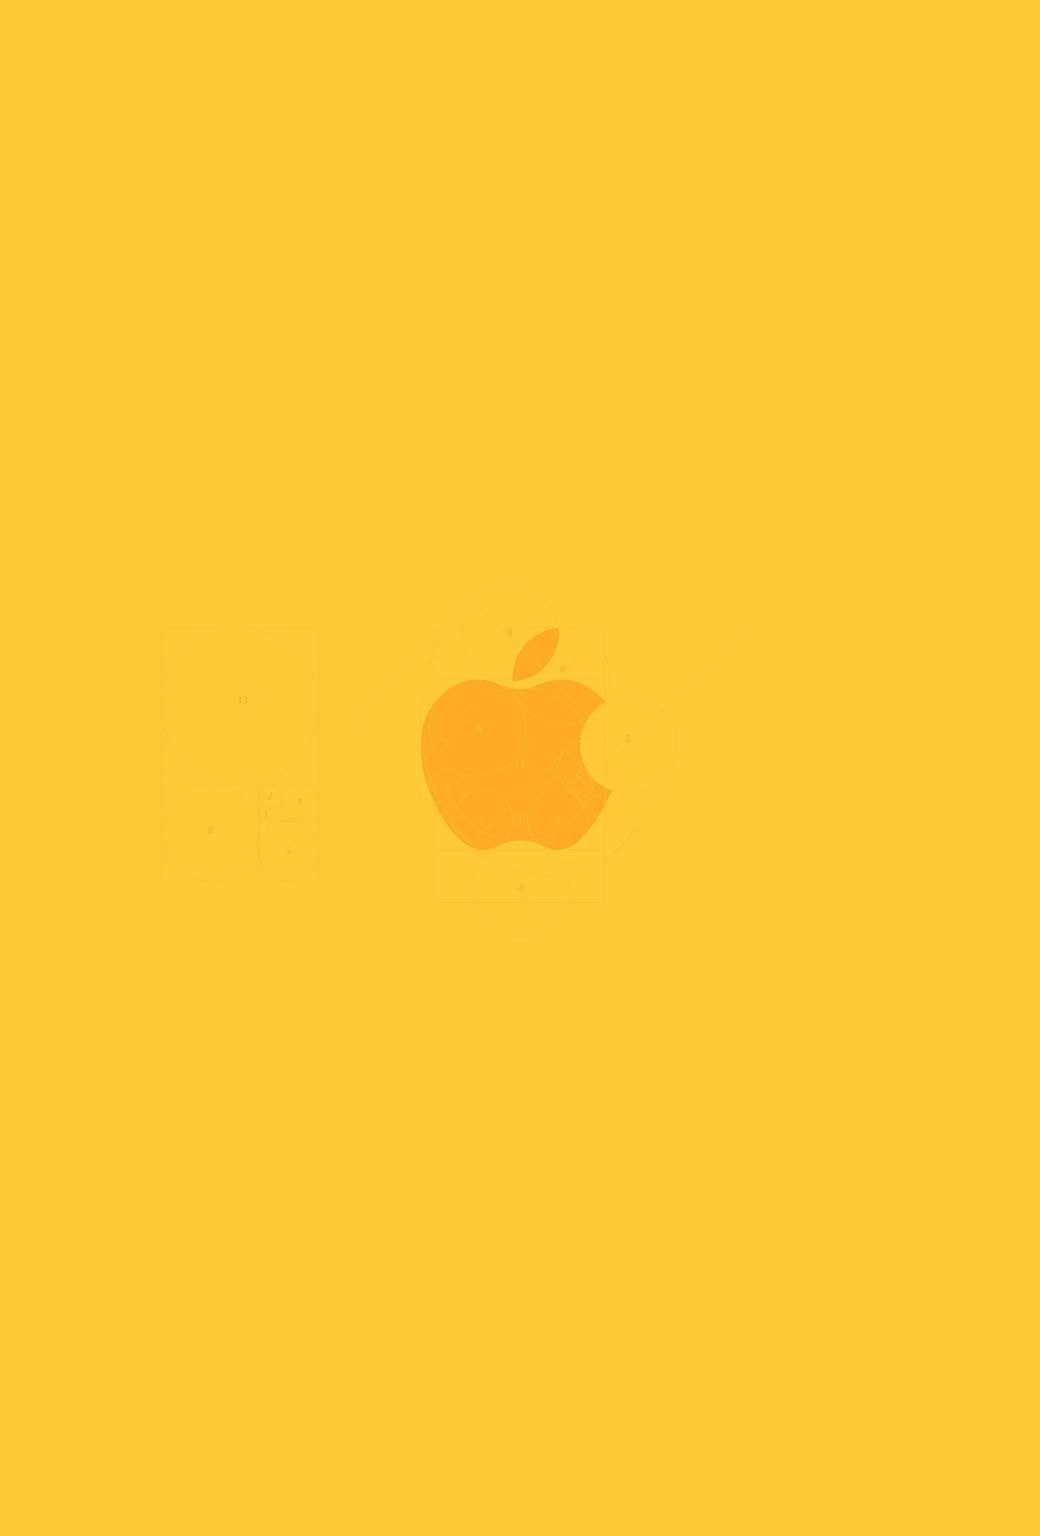 yellow wallpaper for iphone - Bing images | Apple Love! in 2019 | Iphone wallpaper yellow ...